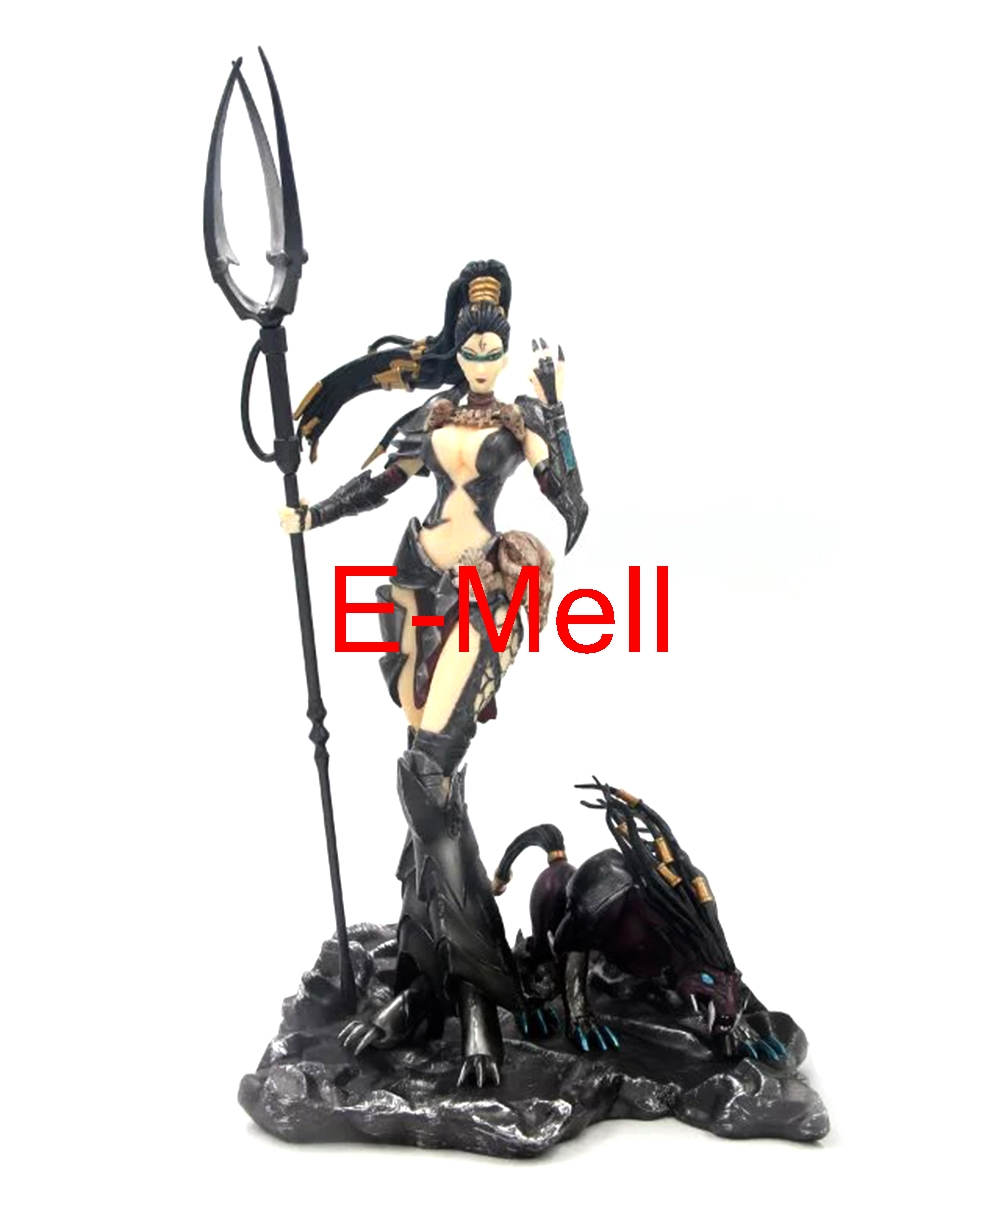 LOL Cosplay 17cm/6.7'' Nidalee the Bestial Huntress PVC GK Garage Kits Action Figures Toys Model one piece cosplay x drake 19cm 7 5 boxed gk garage kit action figures model toys